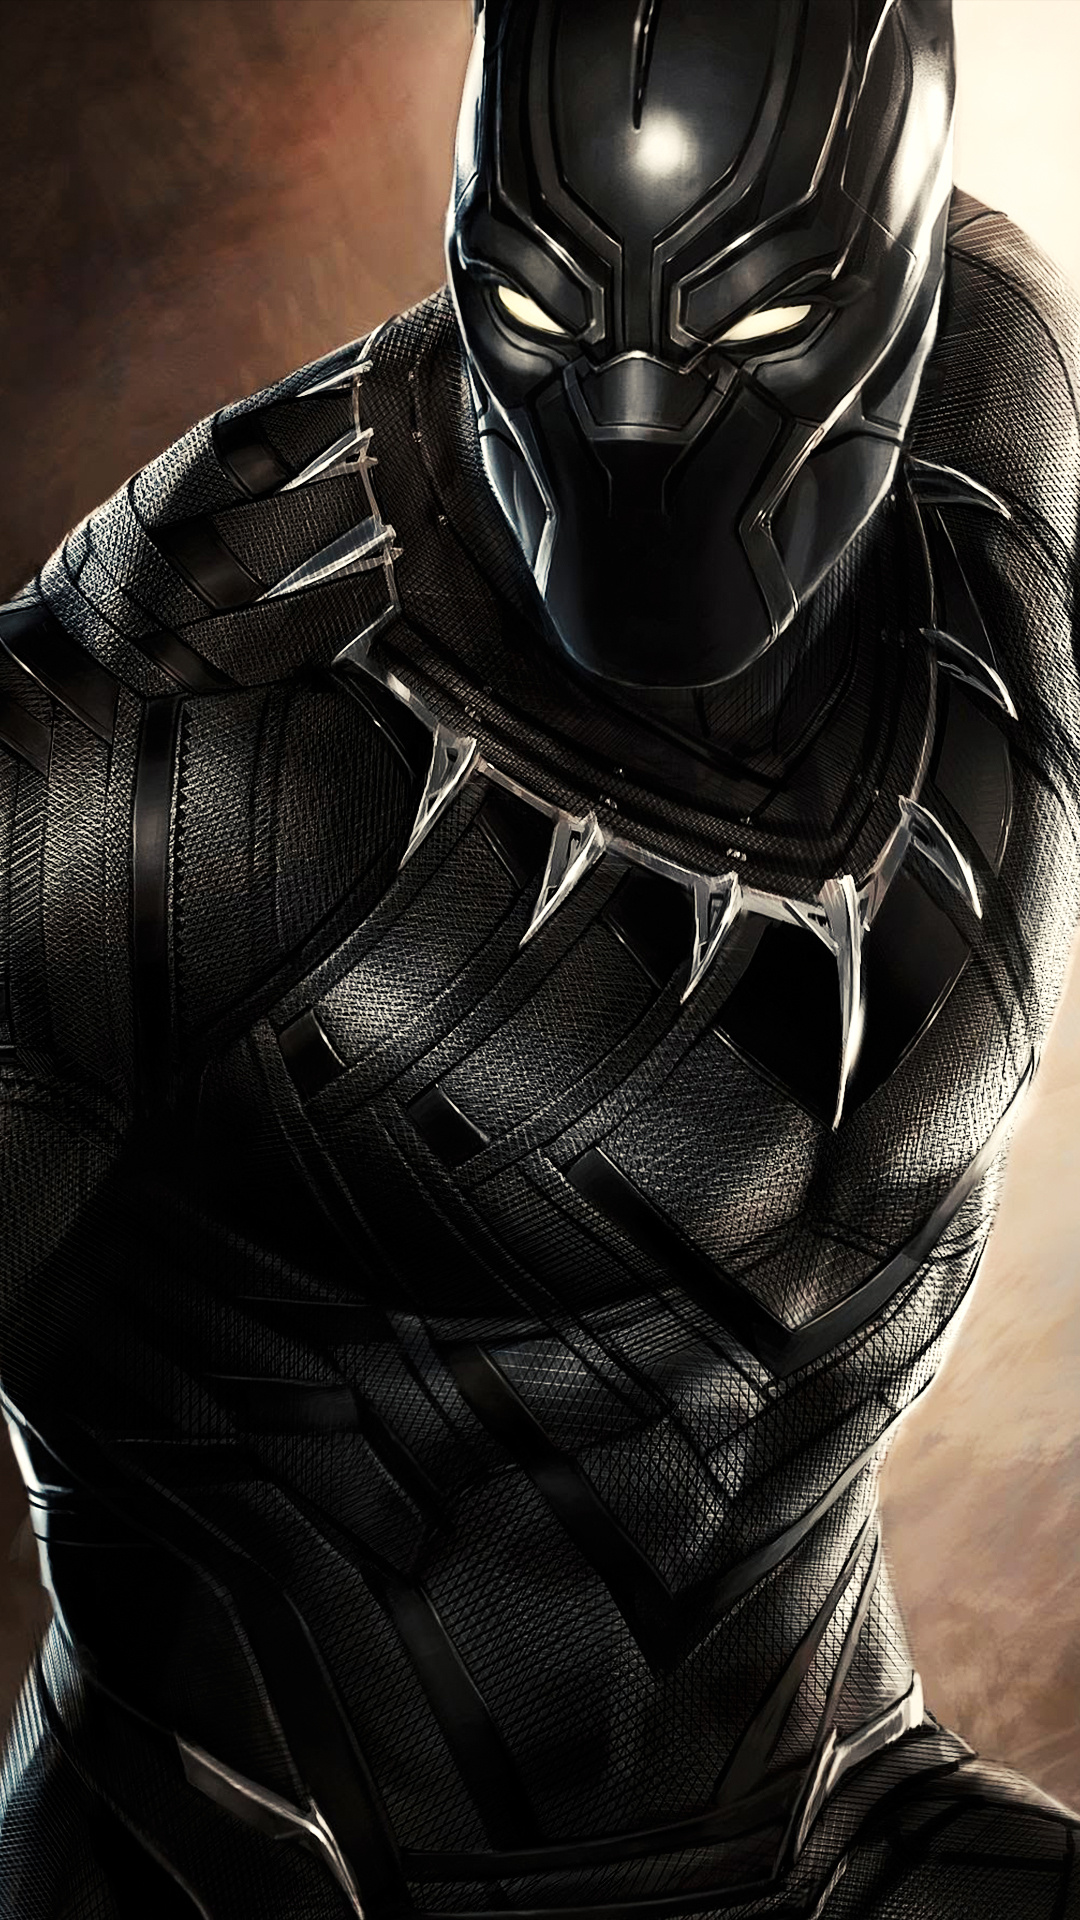 iPhone wallpaper black panther2 Black Panther